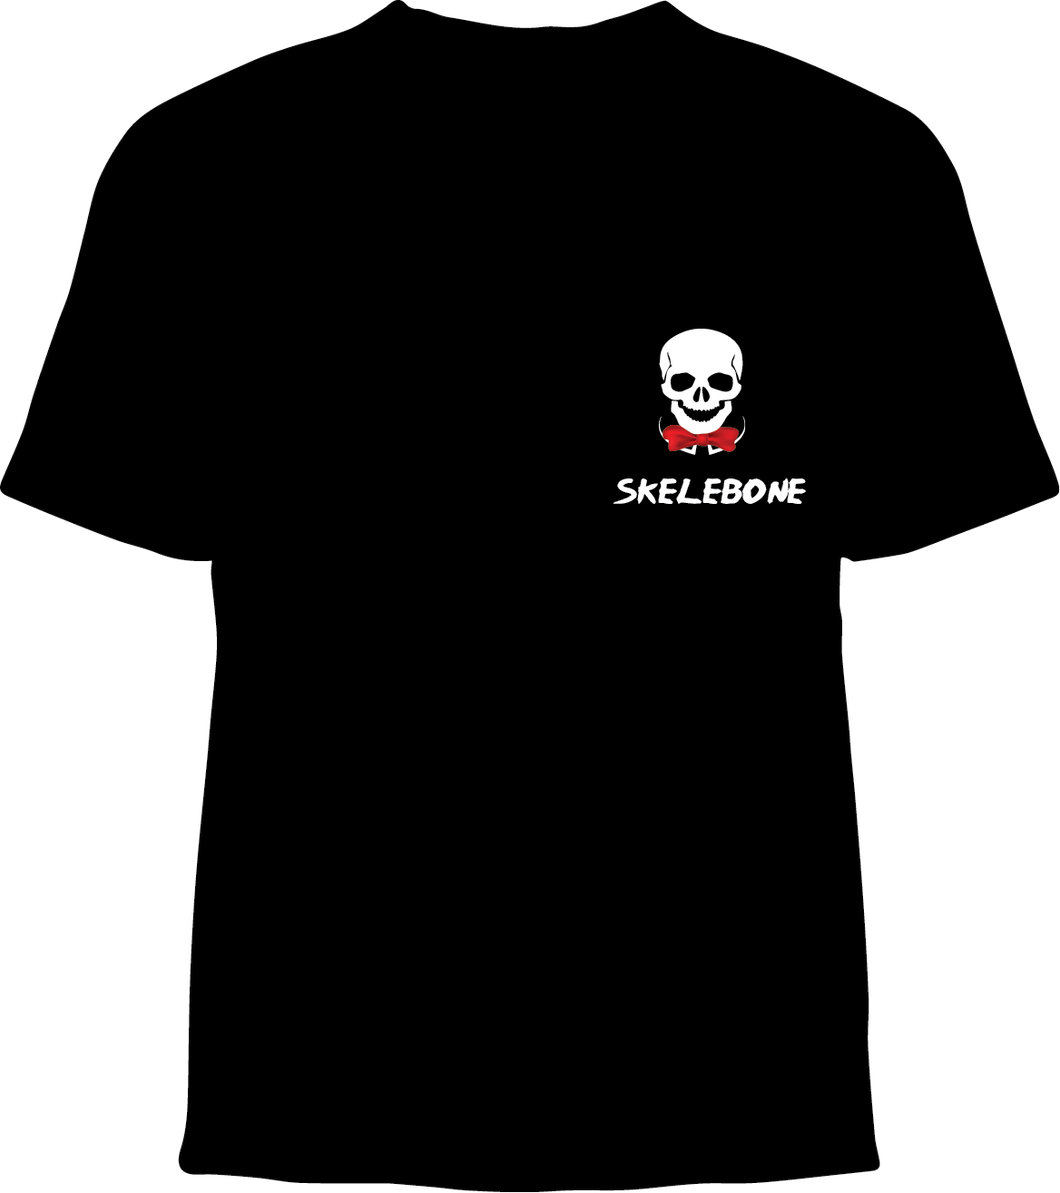 Skelebone Short Sleeve T-shirt, Skull and Bowtie Logo Pocket